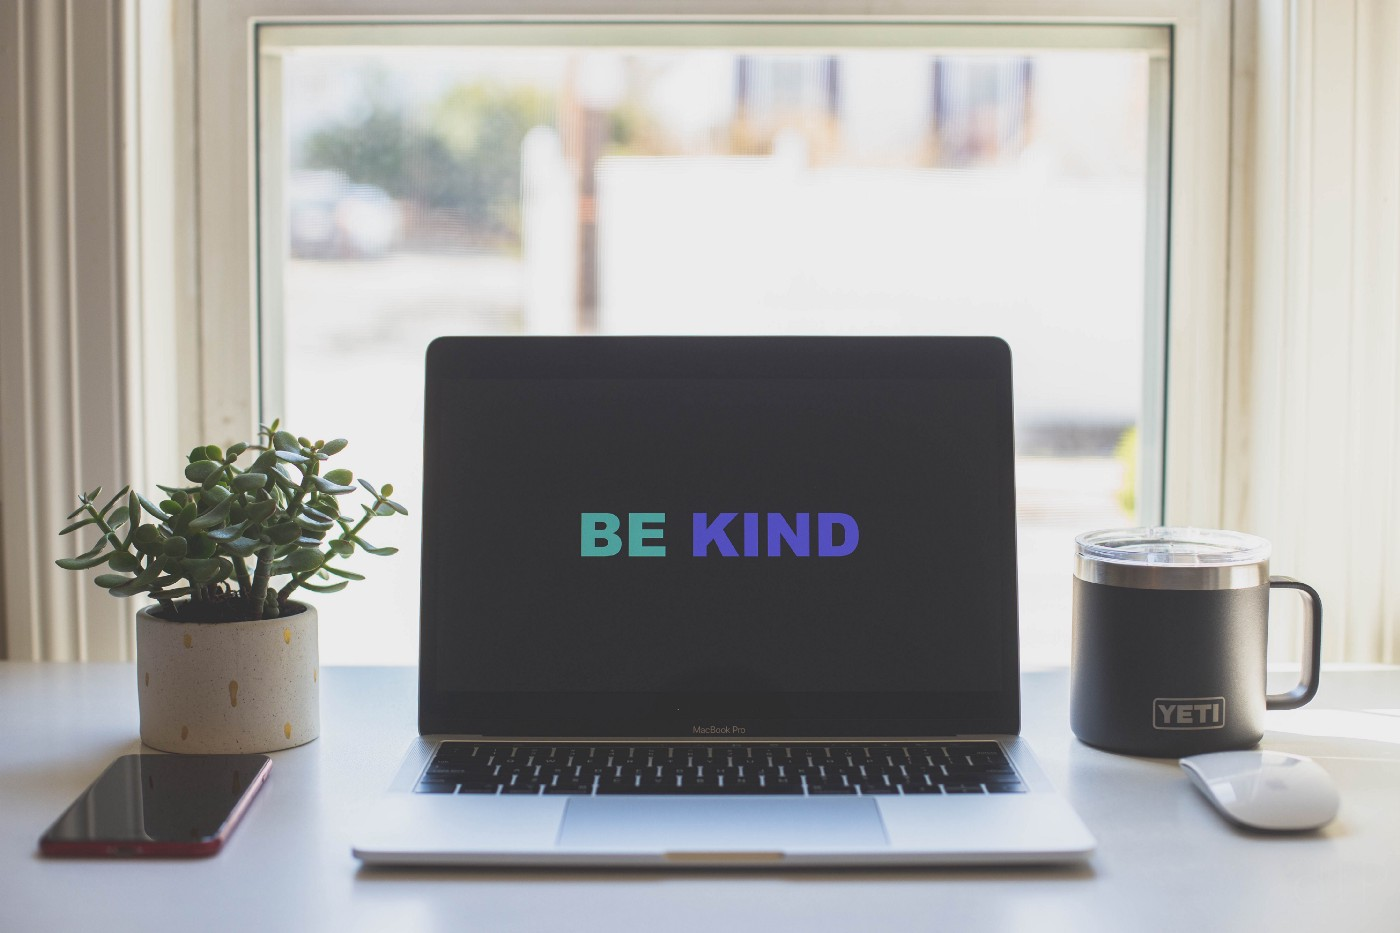 """A desk with a laptop in the middle with the words """"BE KIND"""" on the screen."""